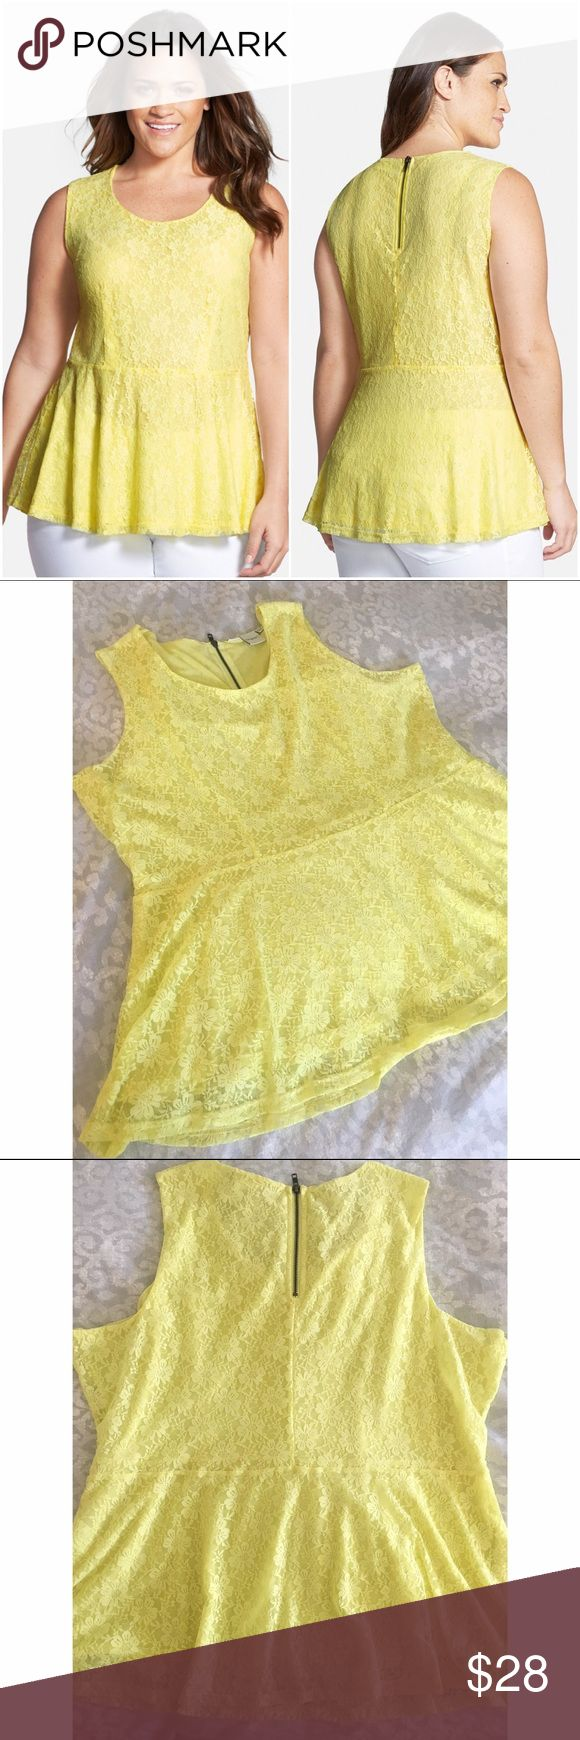 [ junarose ] Sleeveless Lace Peplum Top 💛 Absolutely pretty & adorable! Bright and soft, this Nordstrom top is the perfect pop of color. Lined and semi-sheer. I love that the peplum is on the longer side-- 12 inches --and gently flows down from the waist. The zip in the back adds interest and a little sass. 😉 Only worn once & in just like new condition. Measures 30 inches from shoulder to hem. A note on sizing: Tag says 'XXL' but also 'USA 3X'. Nordstrom website says 'XXL= 22W-24W' which I…